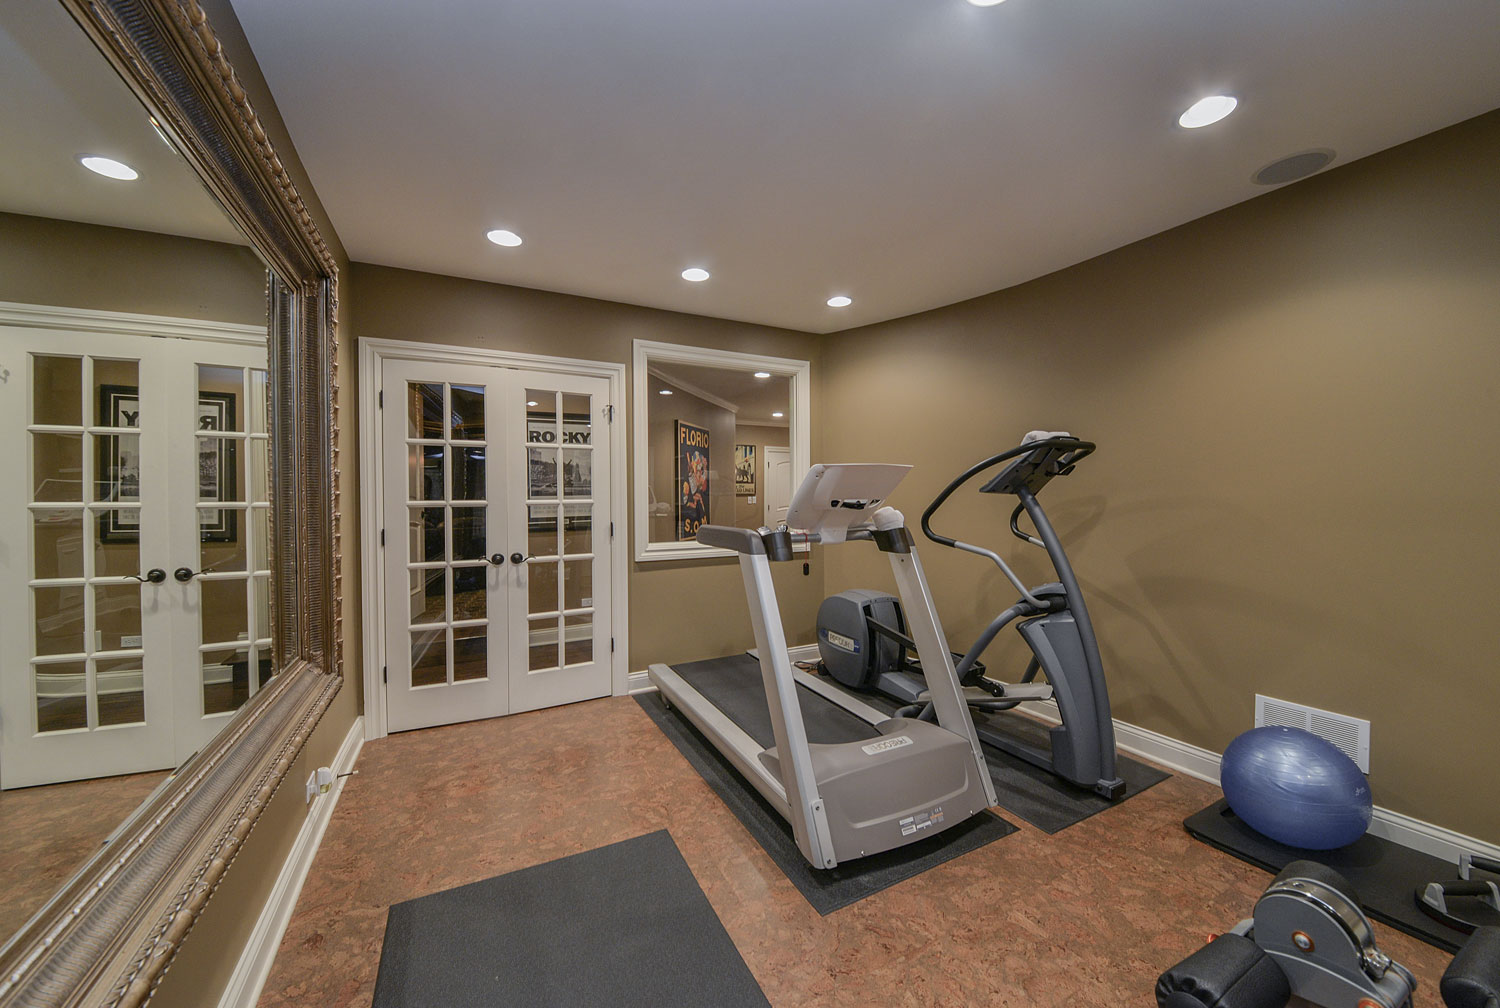 Home Gym Design Ideas Basement: Jim & Gina's Basement Remodel Pictures